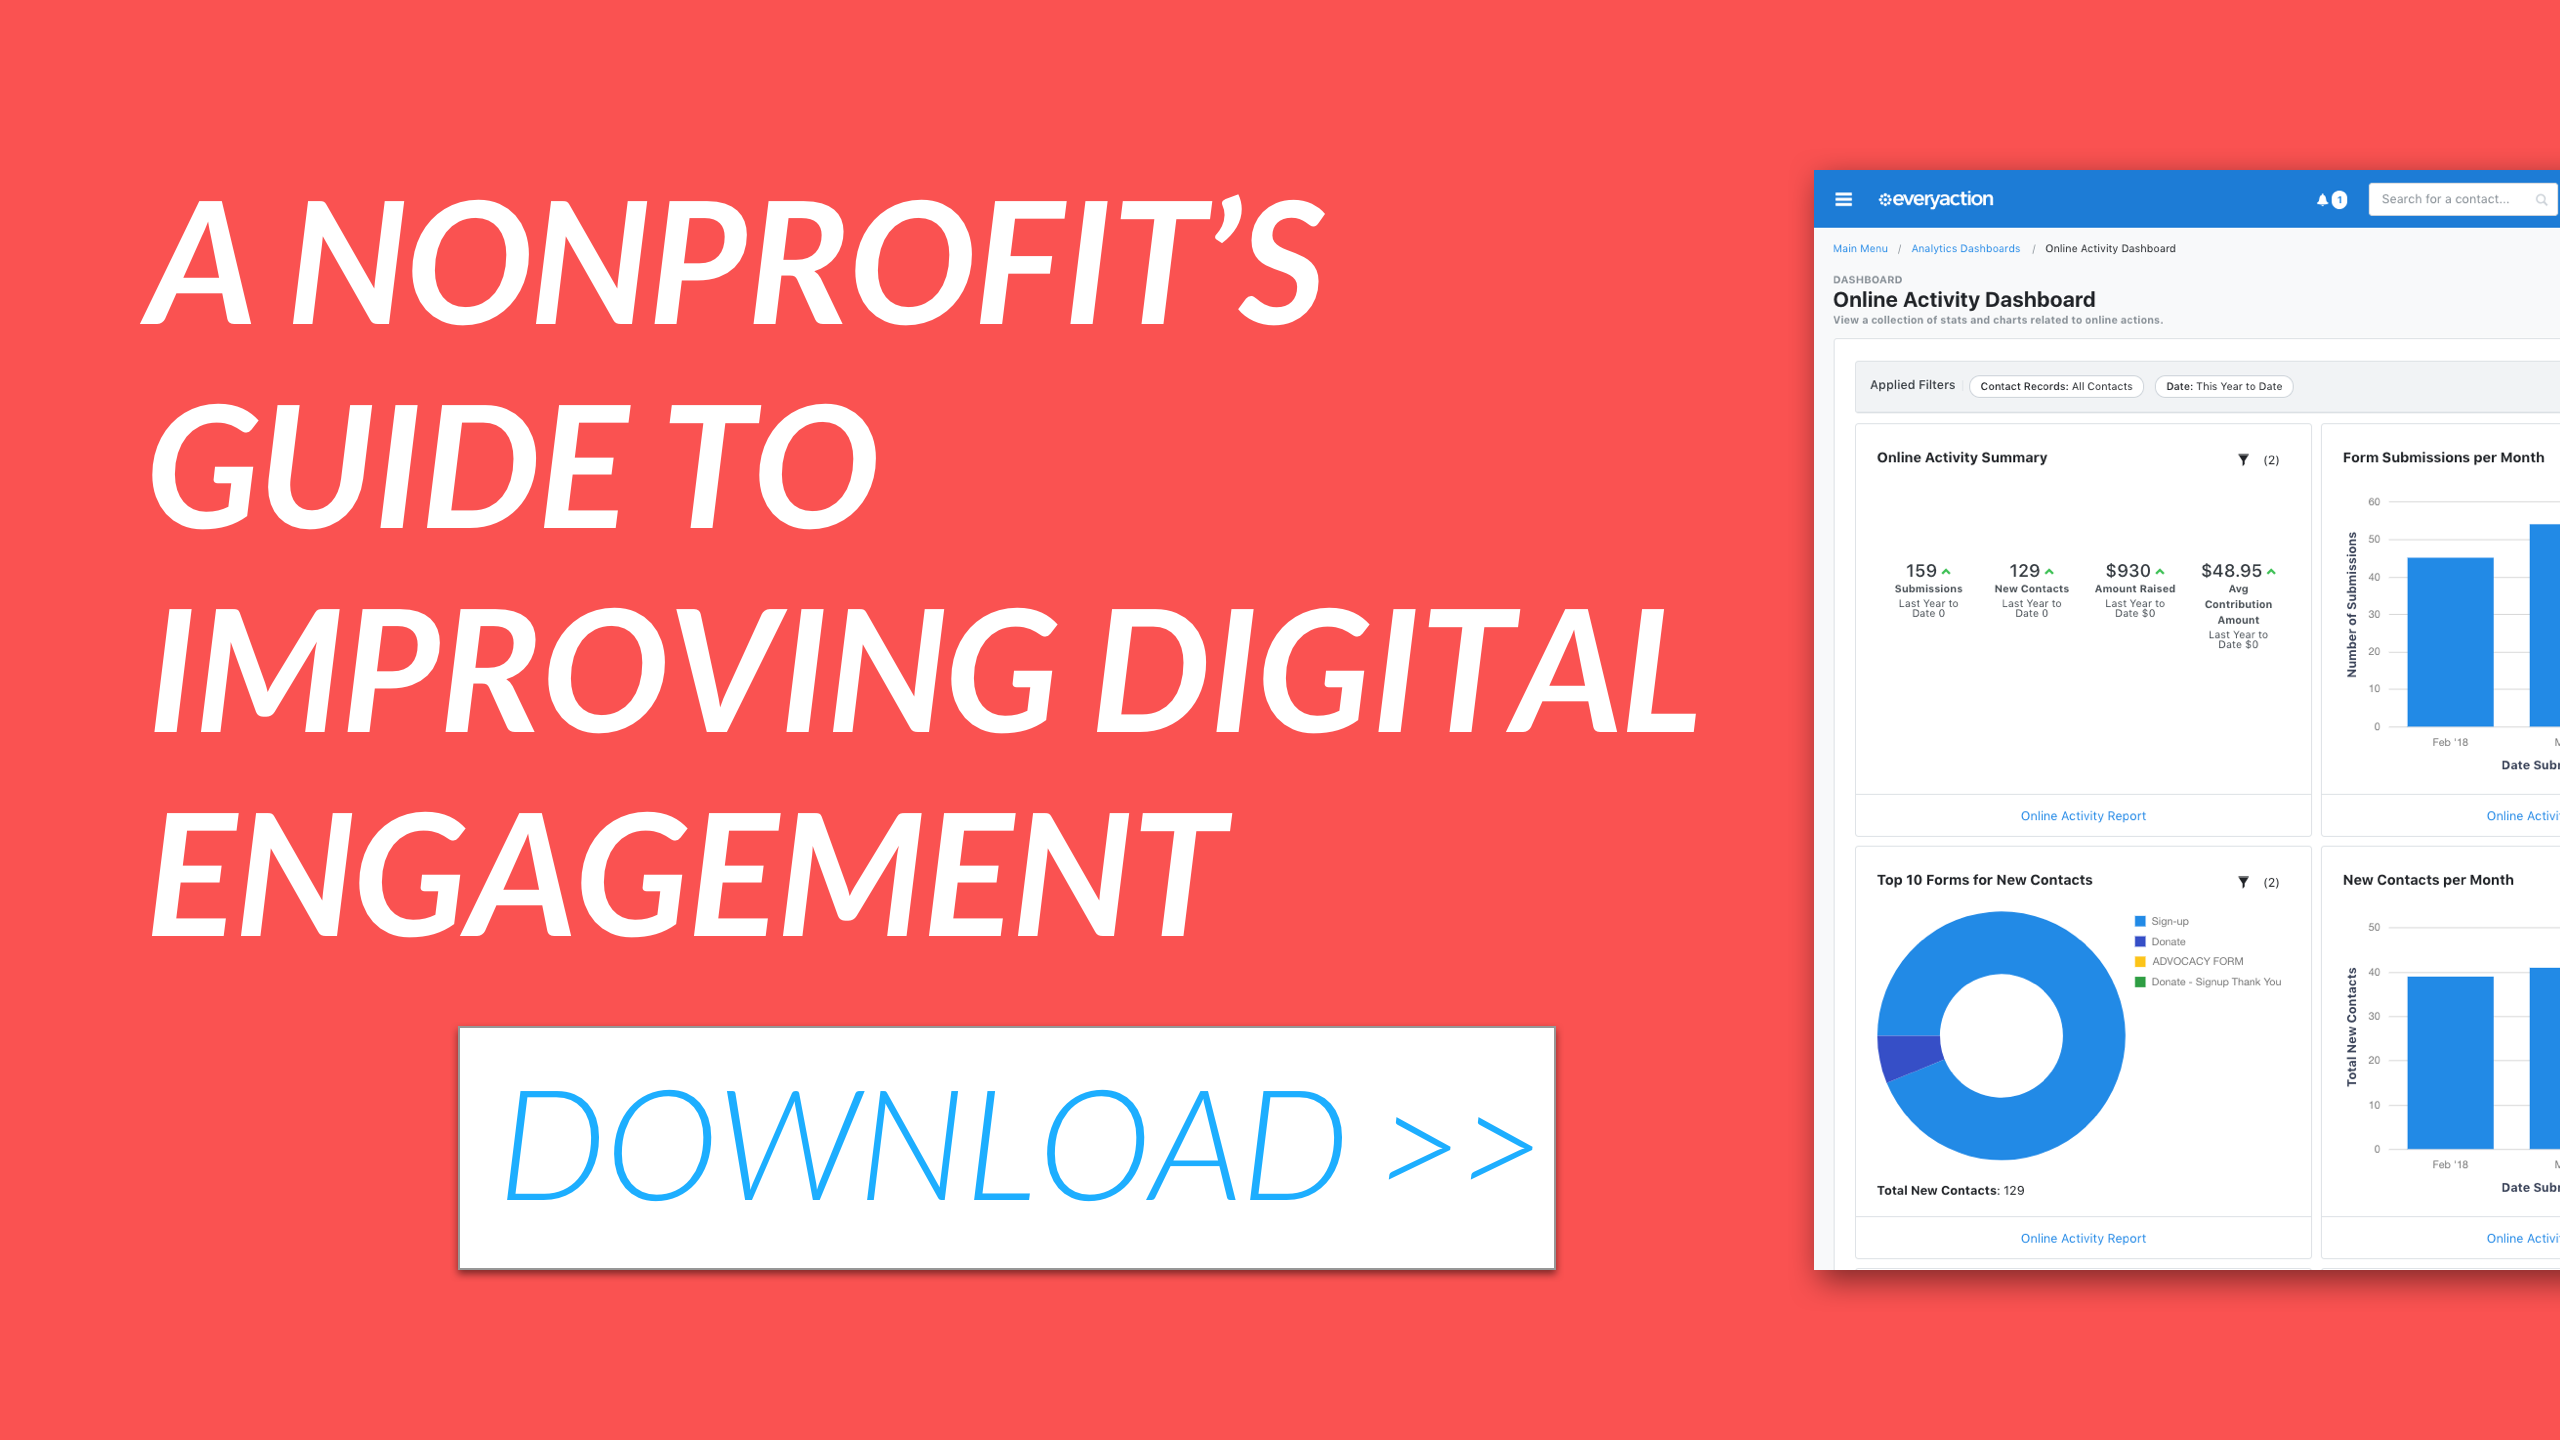 a nonprofit's guide to improving digital engagement [download]